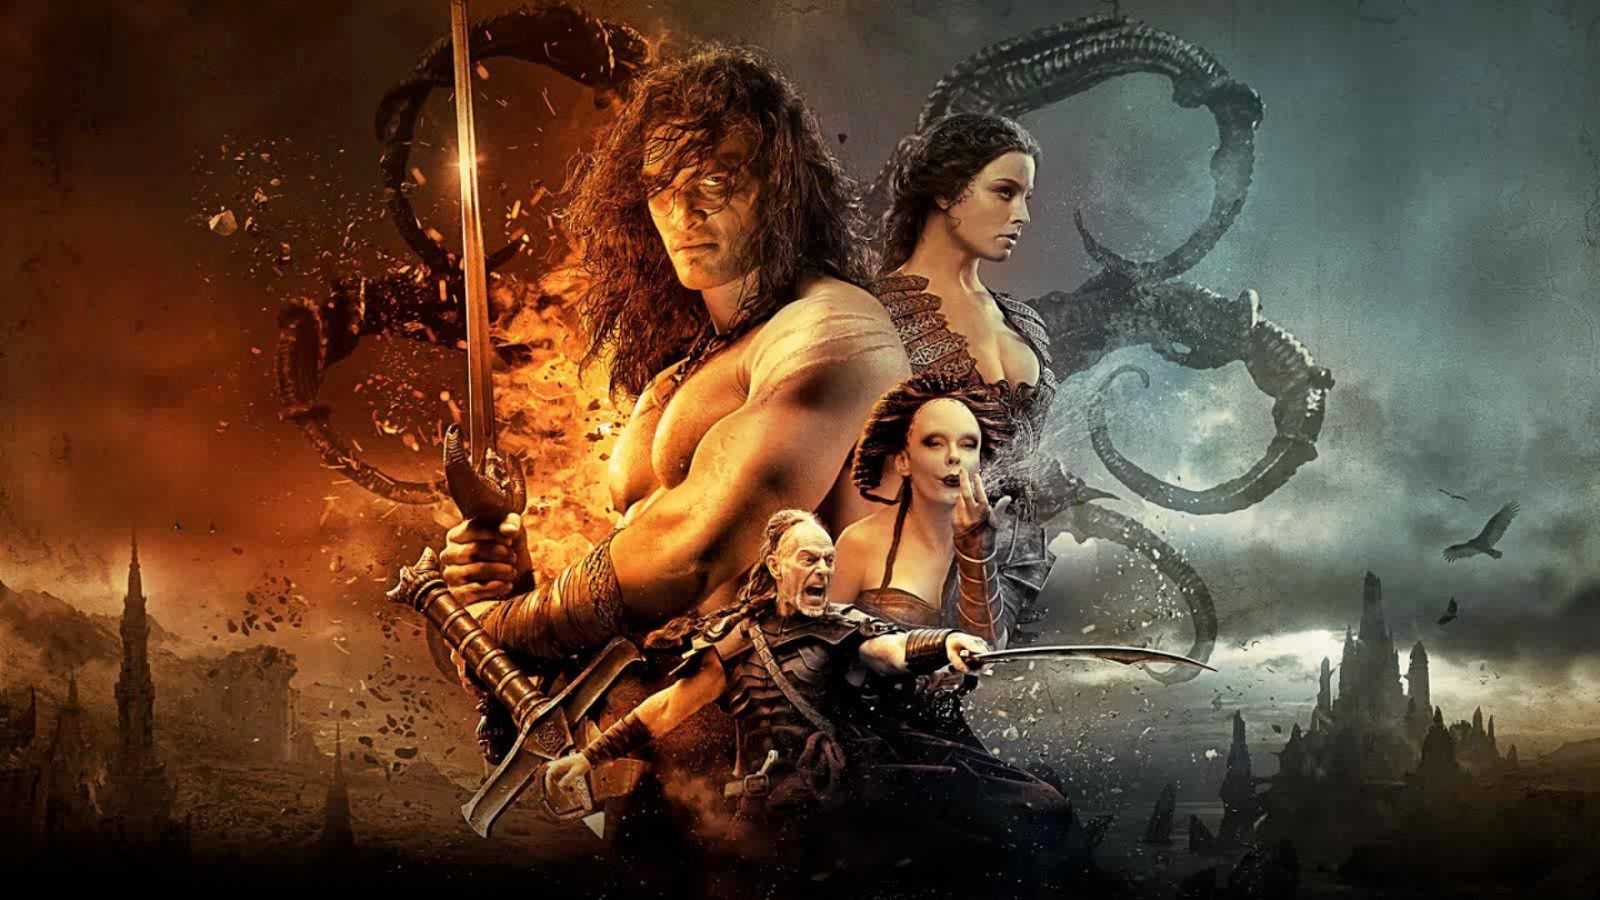 CONAN THE BARBARIAN (2011): Sword And Sorcery Done Right